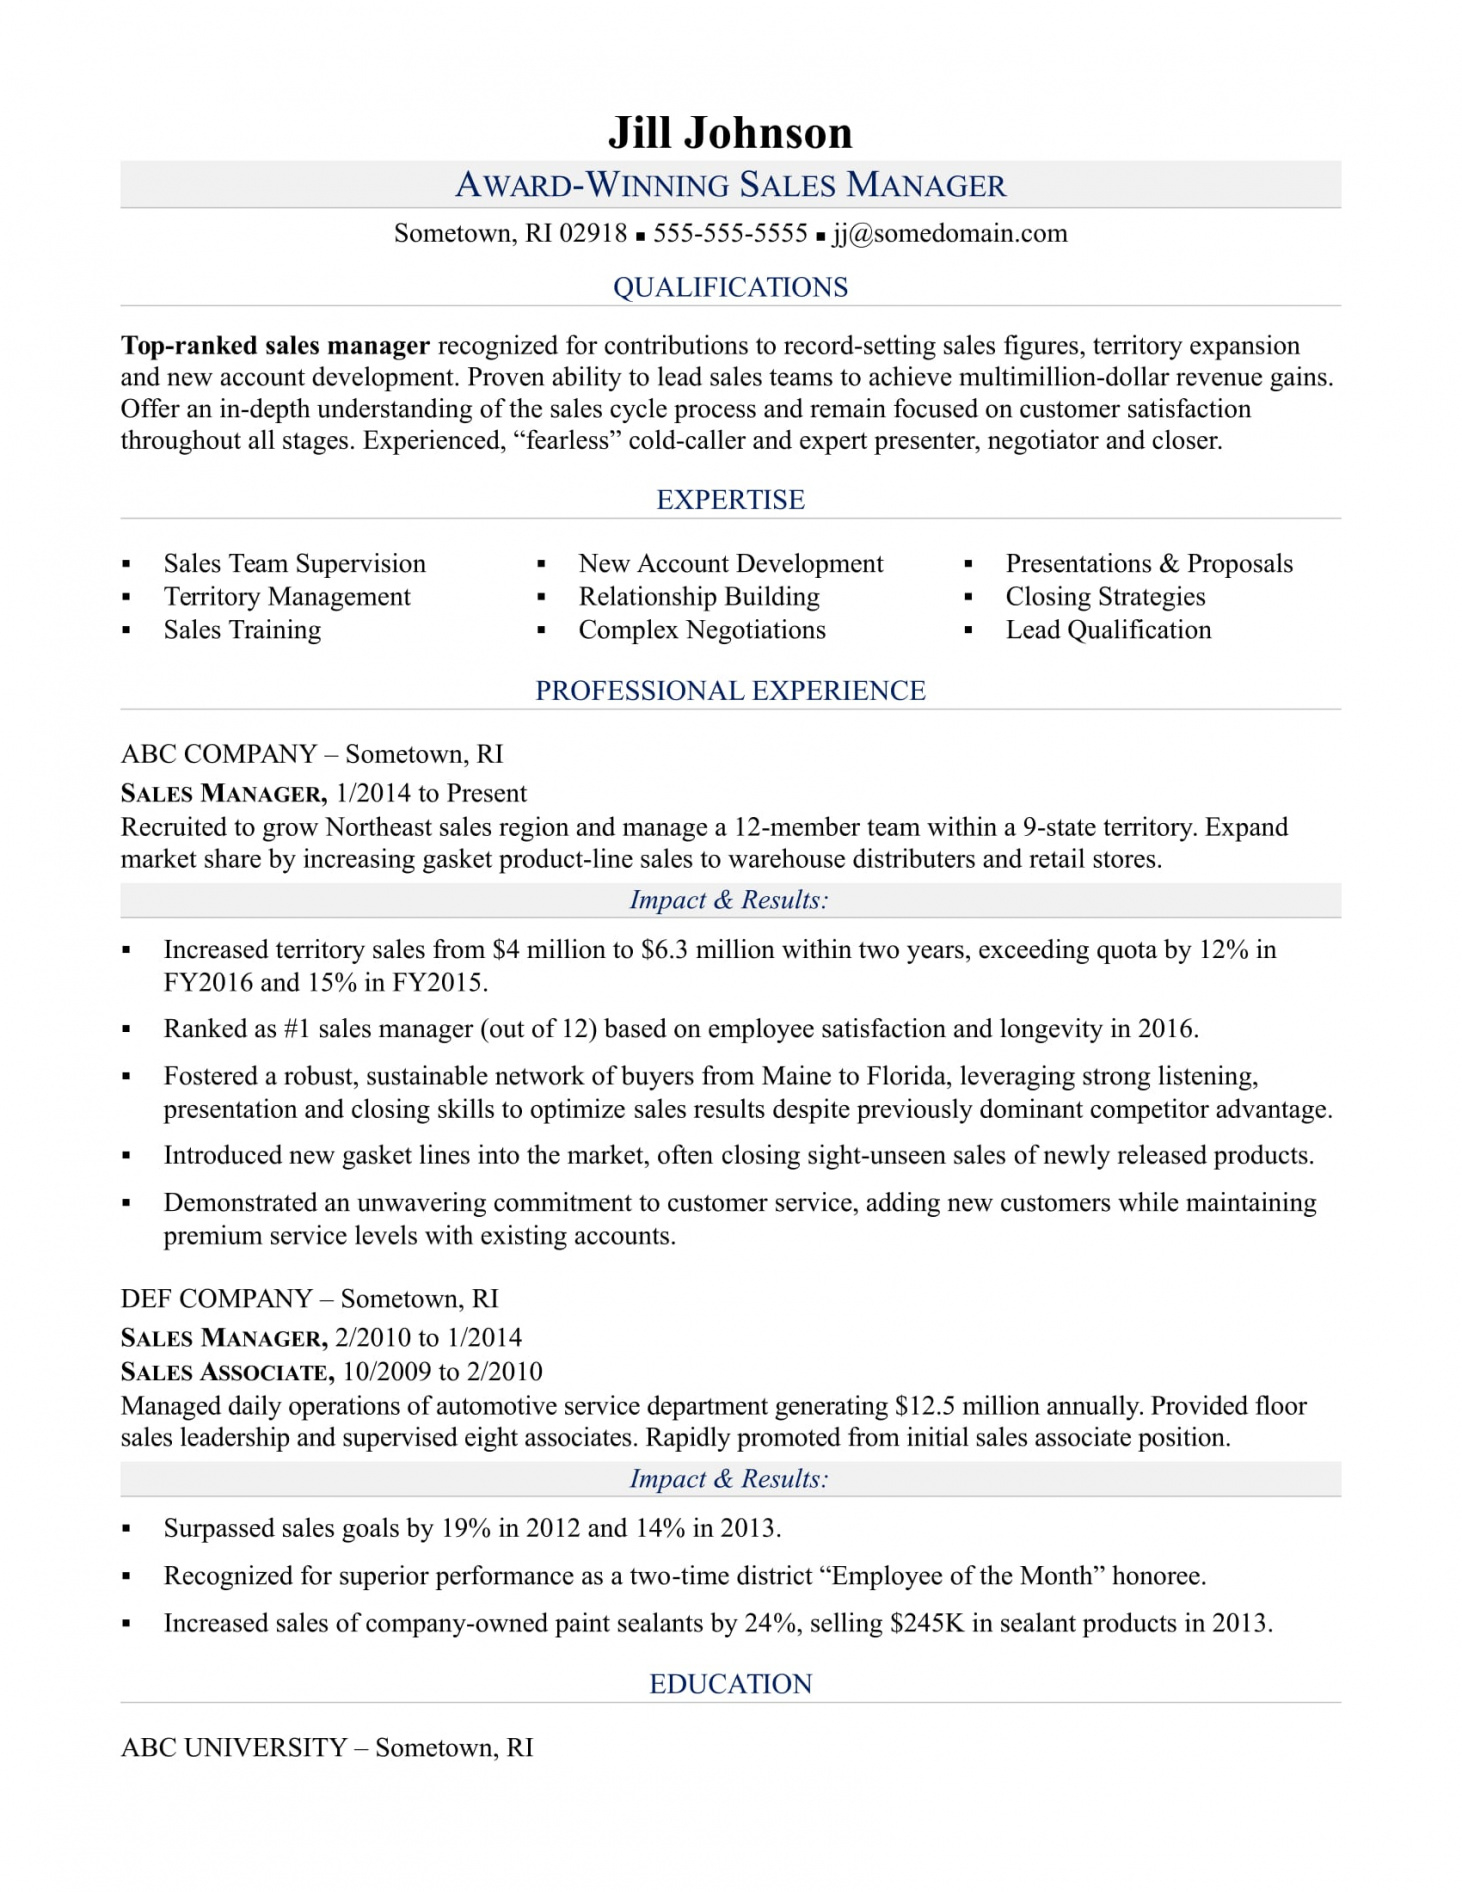 Sales Manager Resume Sample | Monster